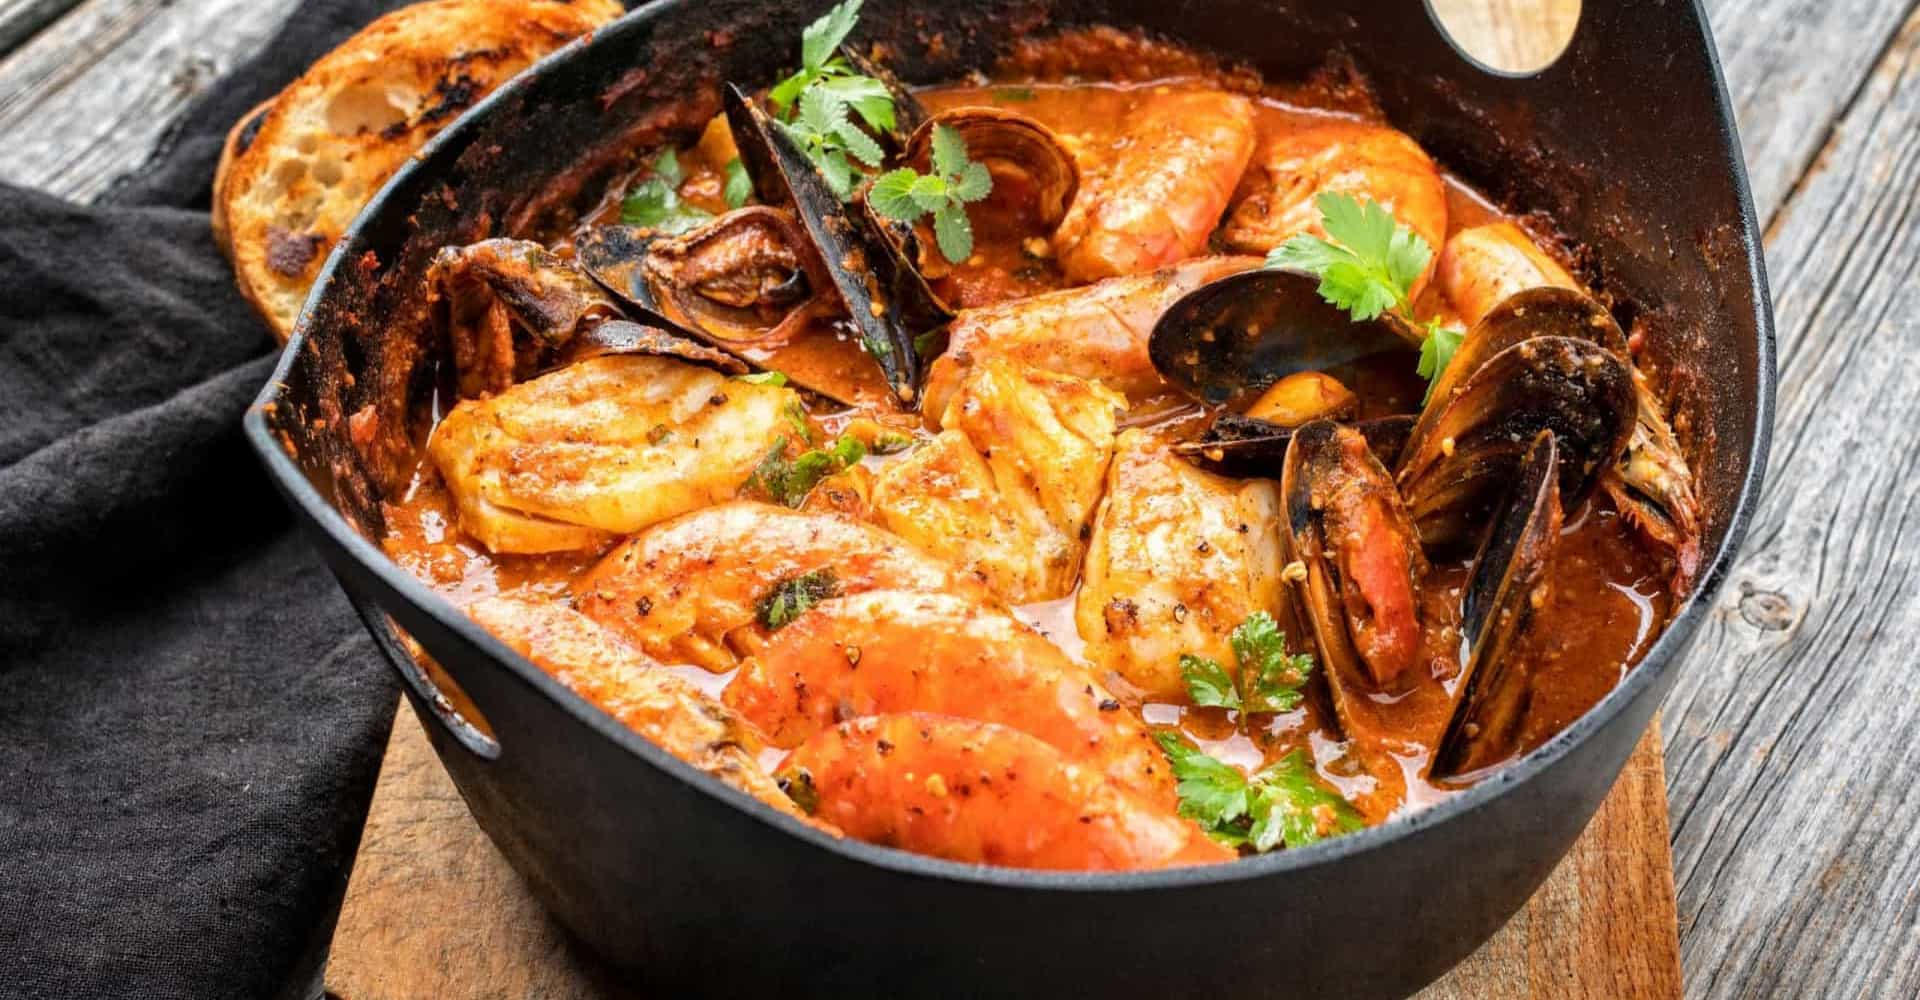 The best fish dishes from around the world